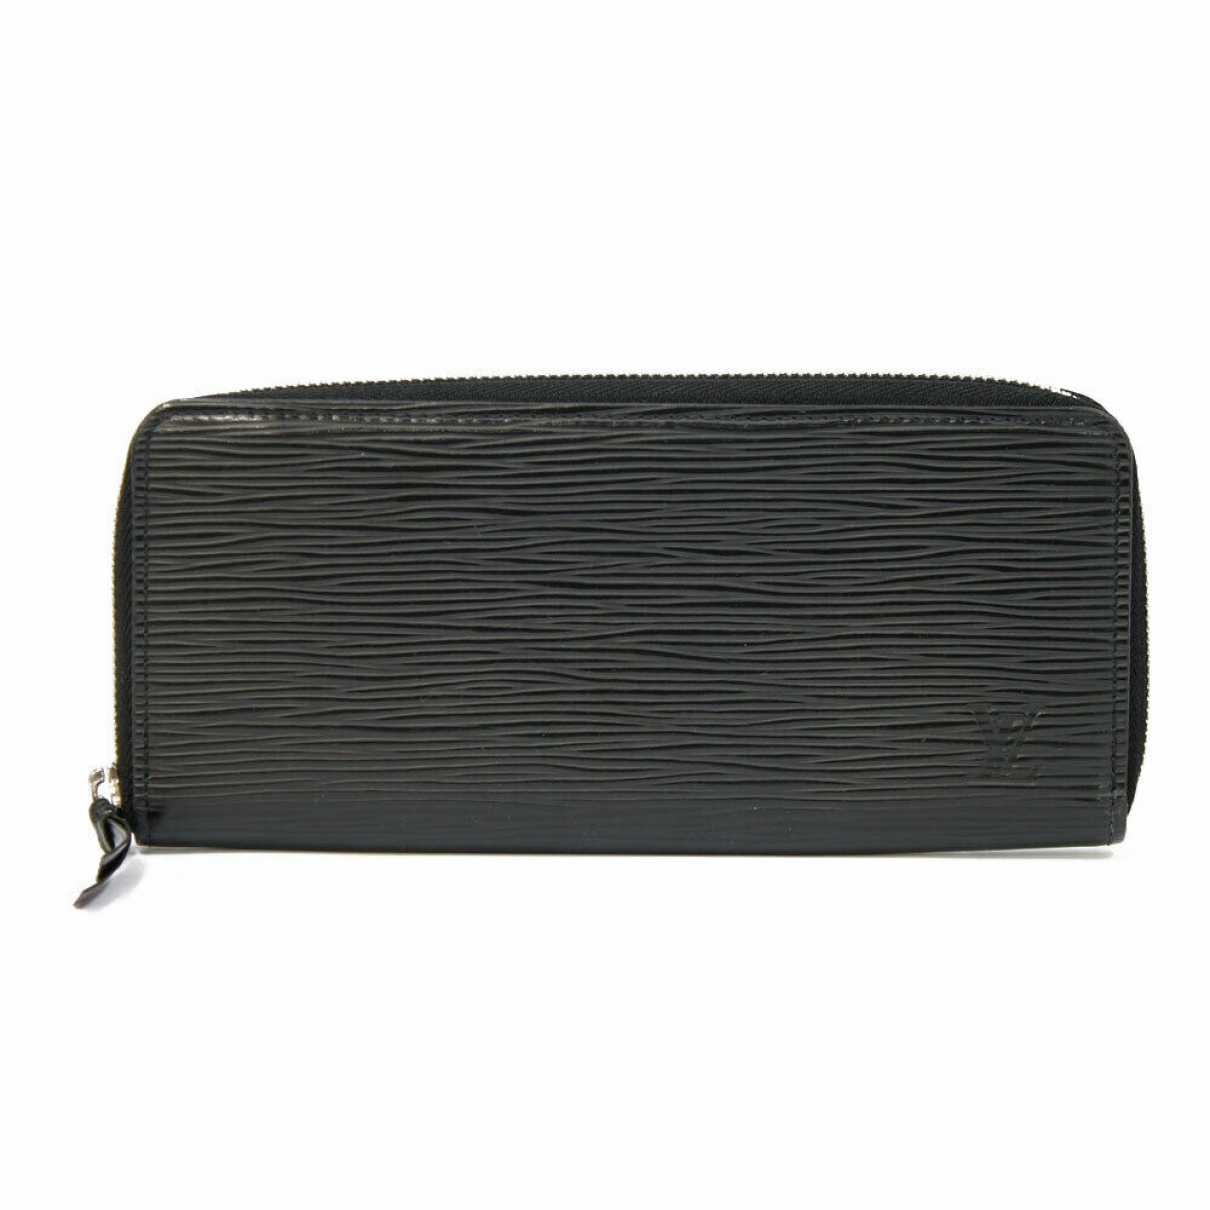 Louis Vuitton N Black Leather Purses, wallet & cases for Women N